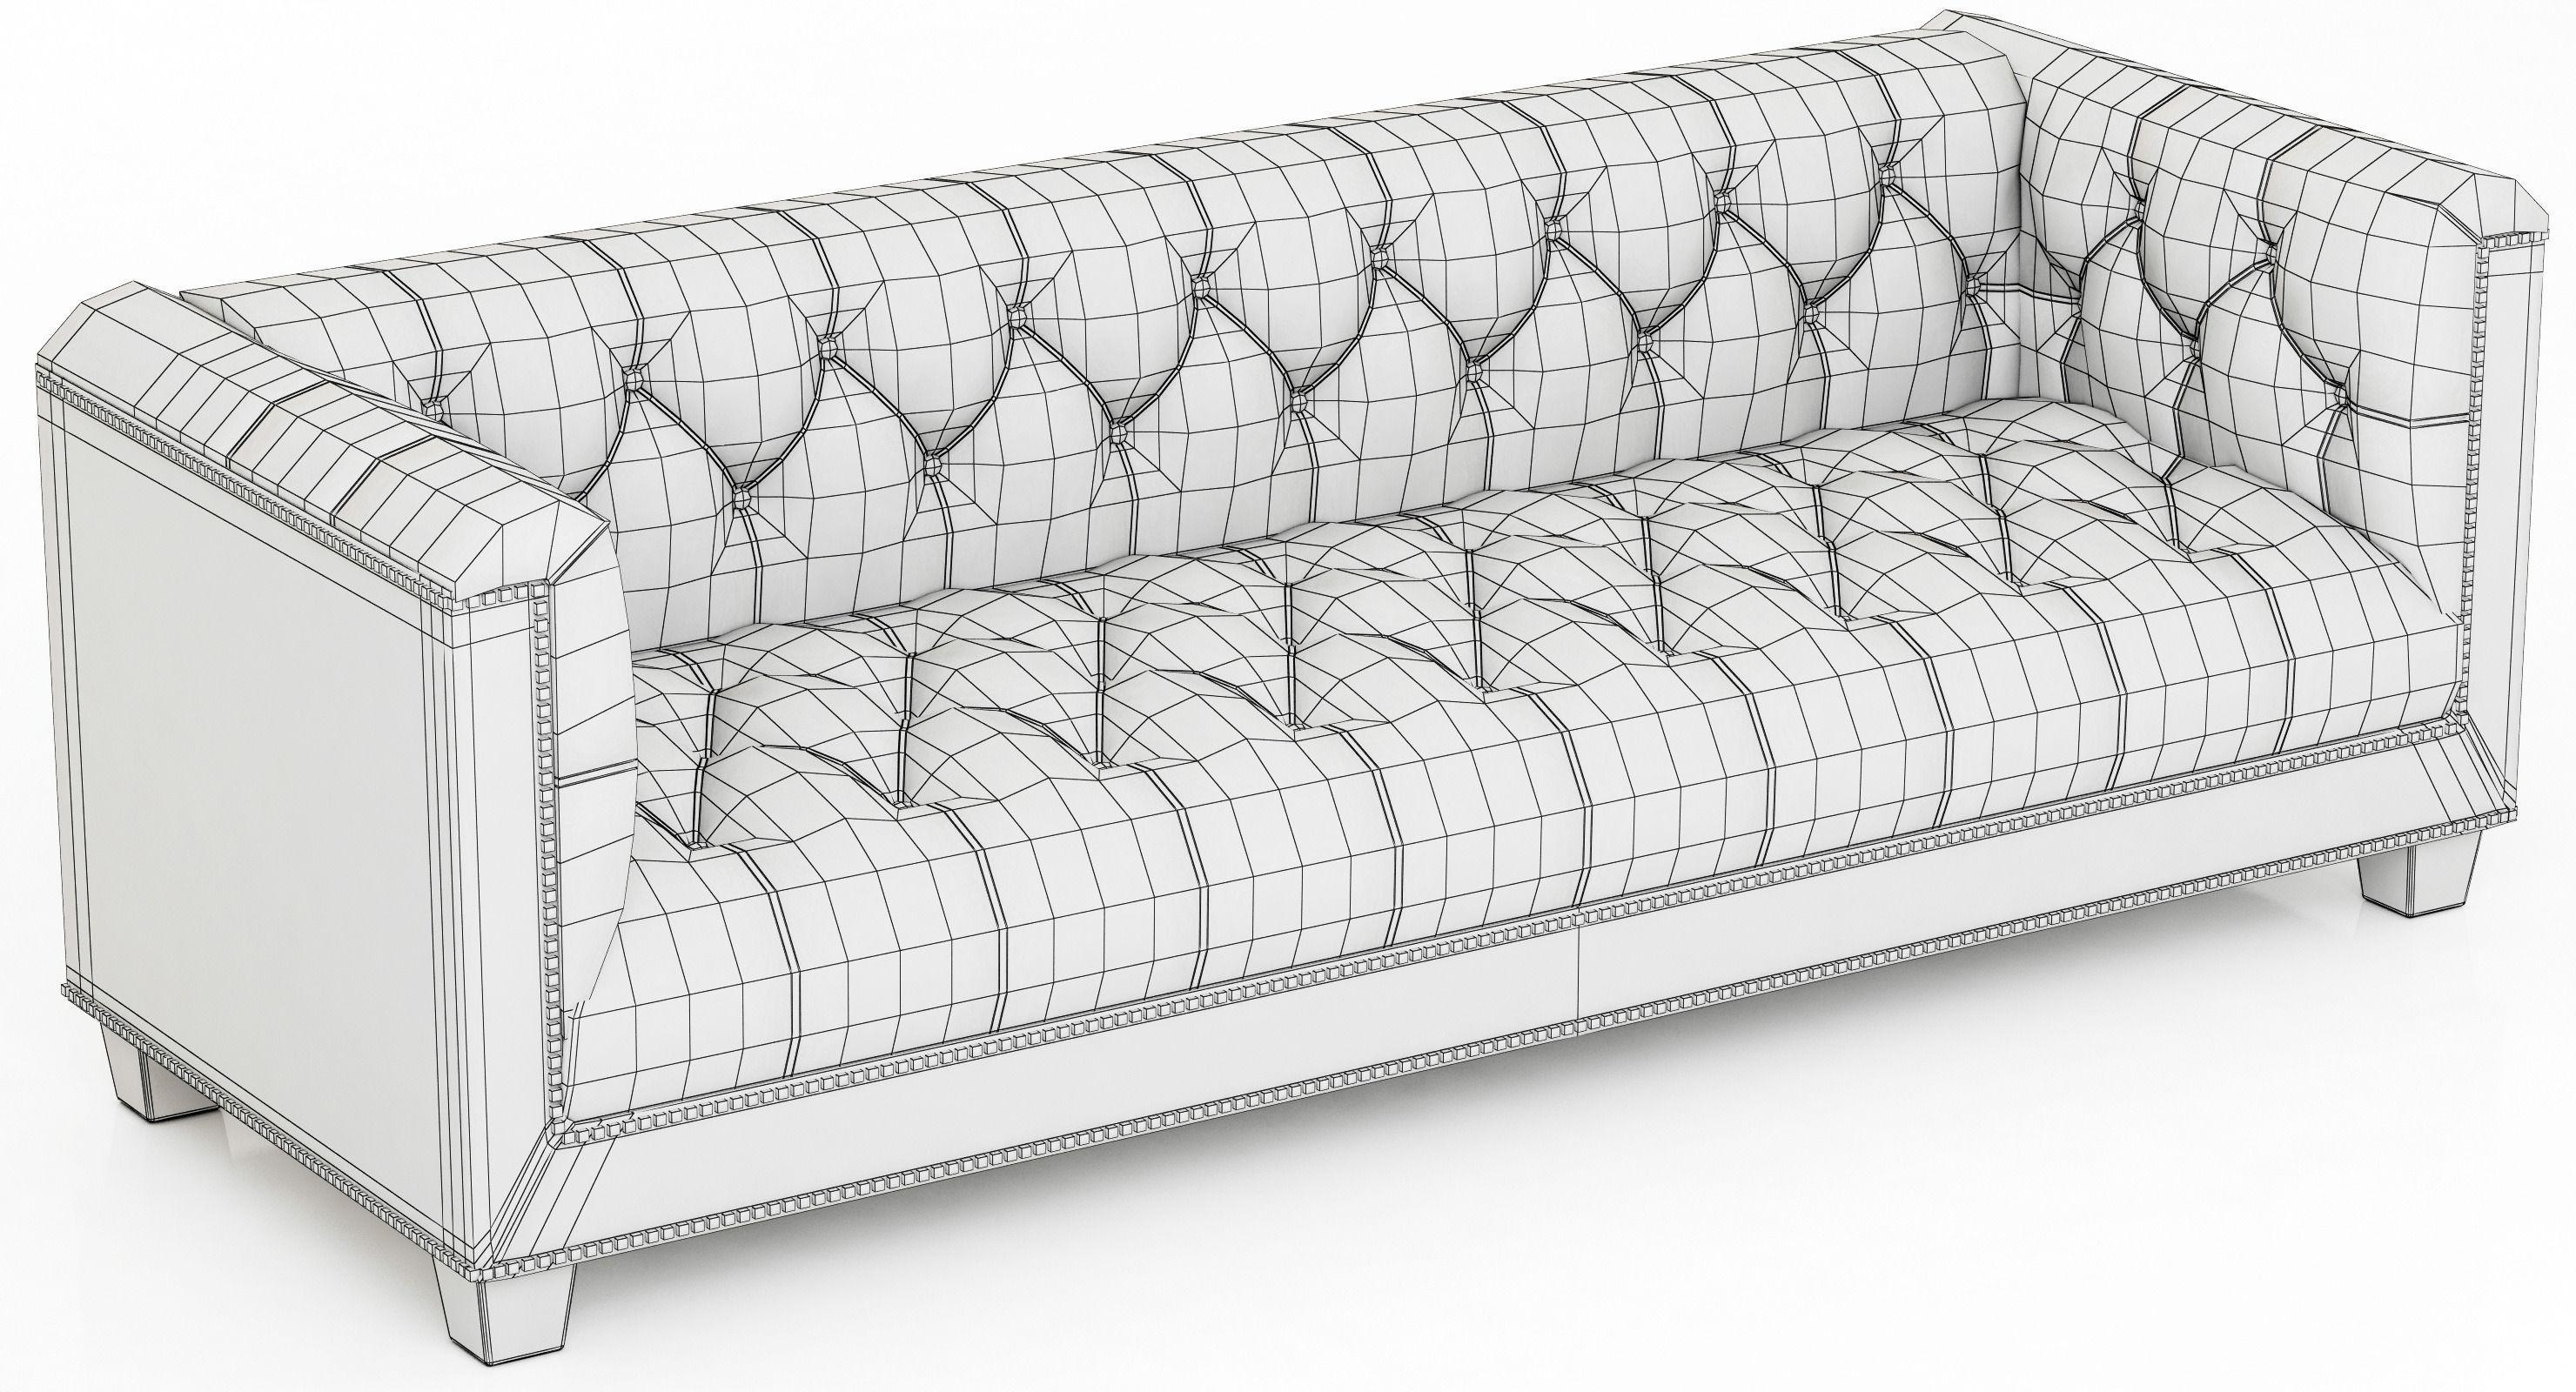 Restoration Hardware Savoy Leather Sofa 3D Model For Savoy Sofas (Image 6 of 20)